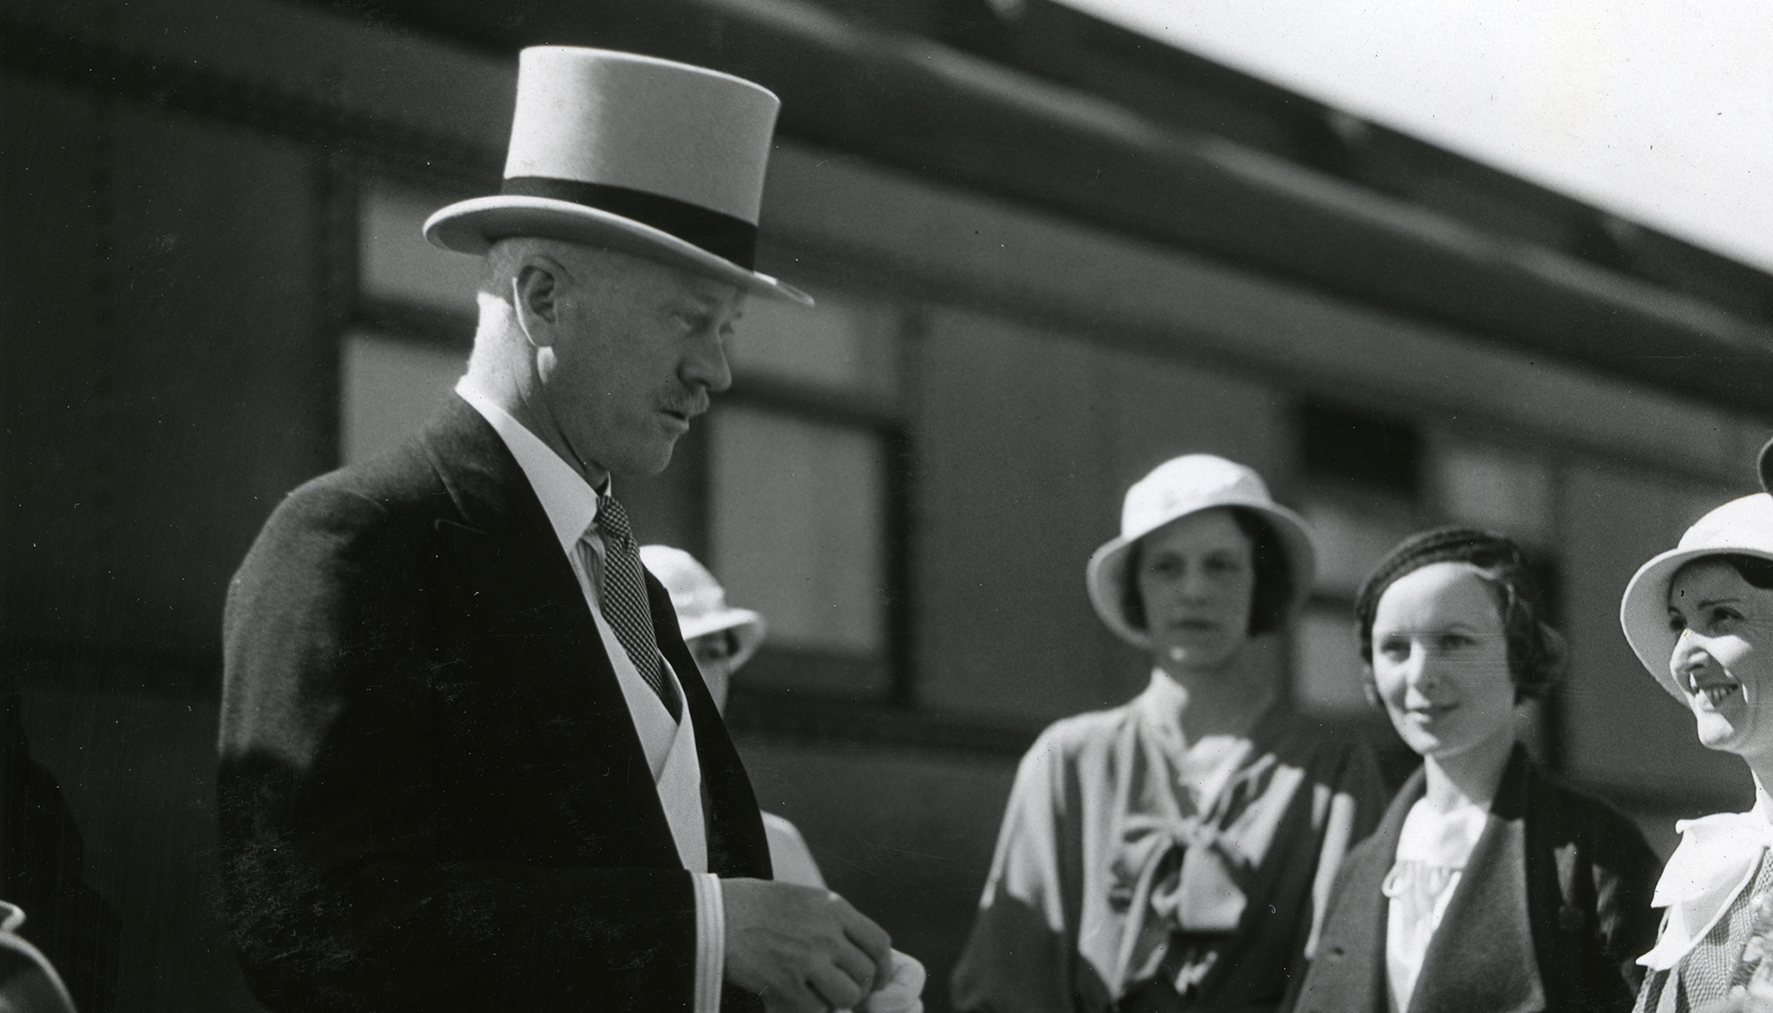 The Earl of Bessborough, Governor General of Canada, being greeted at the railway station in Edmonton, AB, 1933